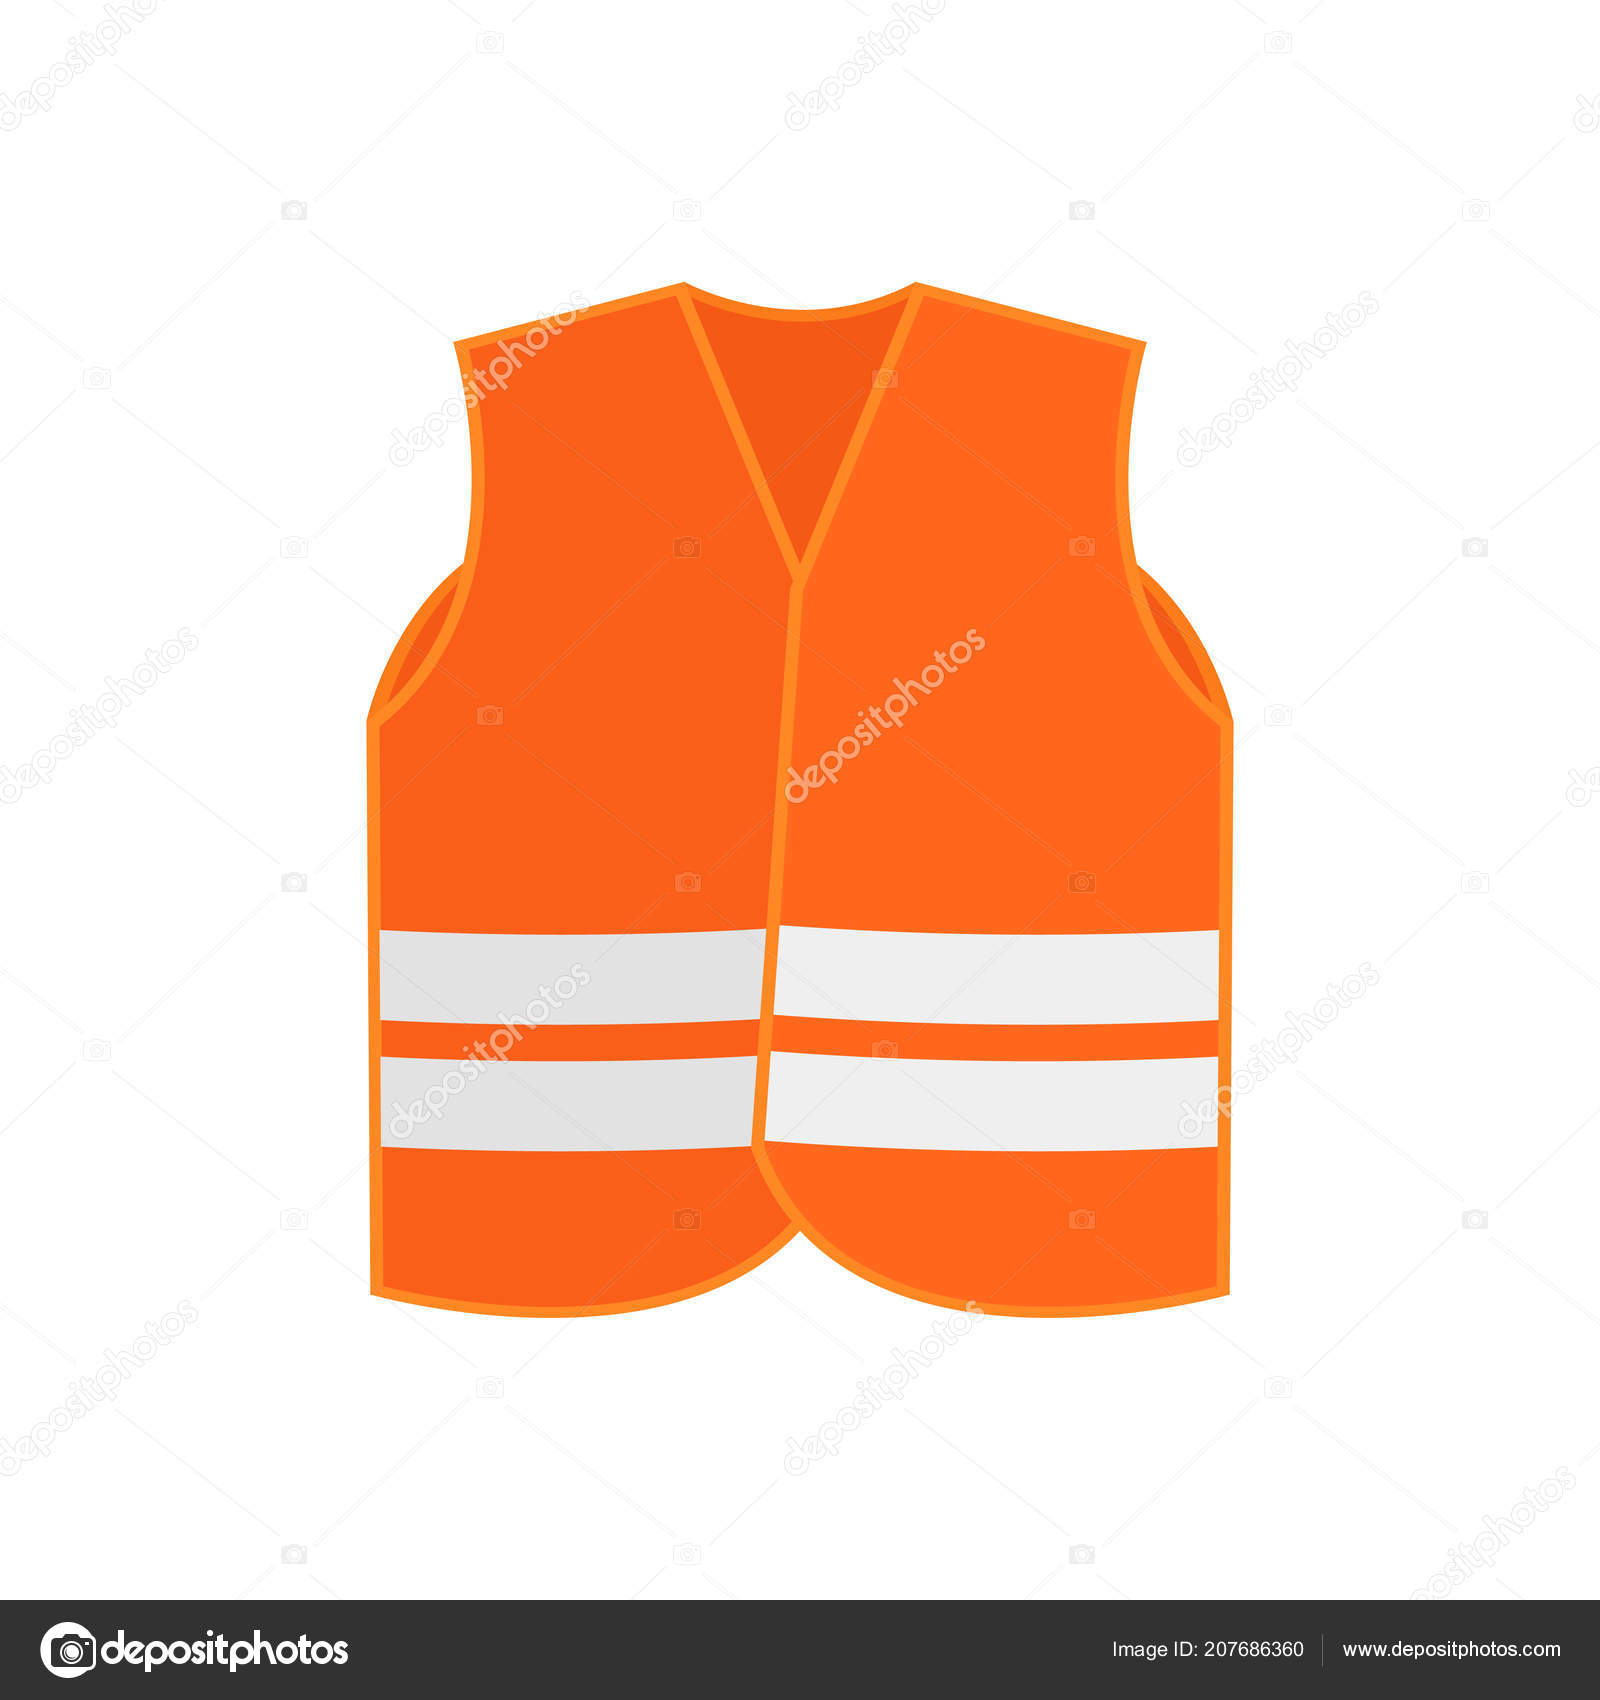 b2c5546f76 Illustration of bright orange safety vest waistcoat with two reflective  stripes. High-visibility clothing. Protective wear for workers.